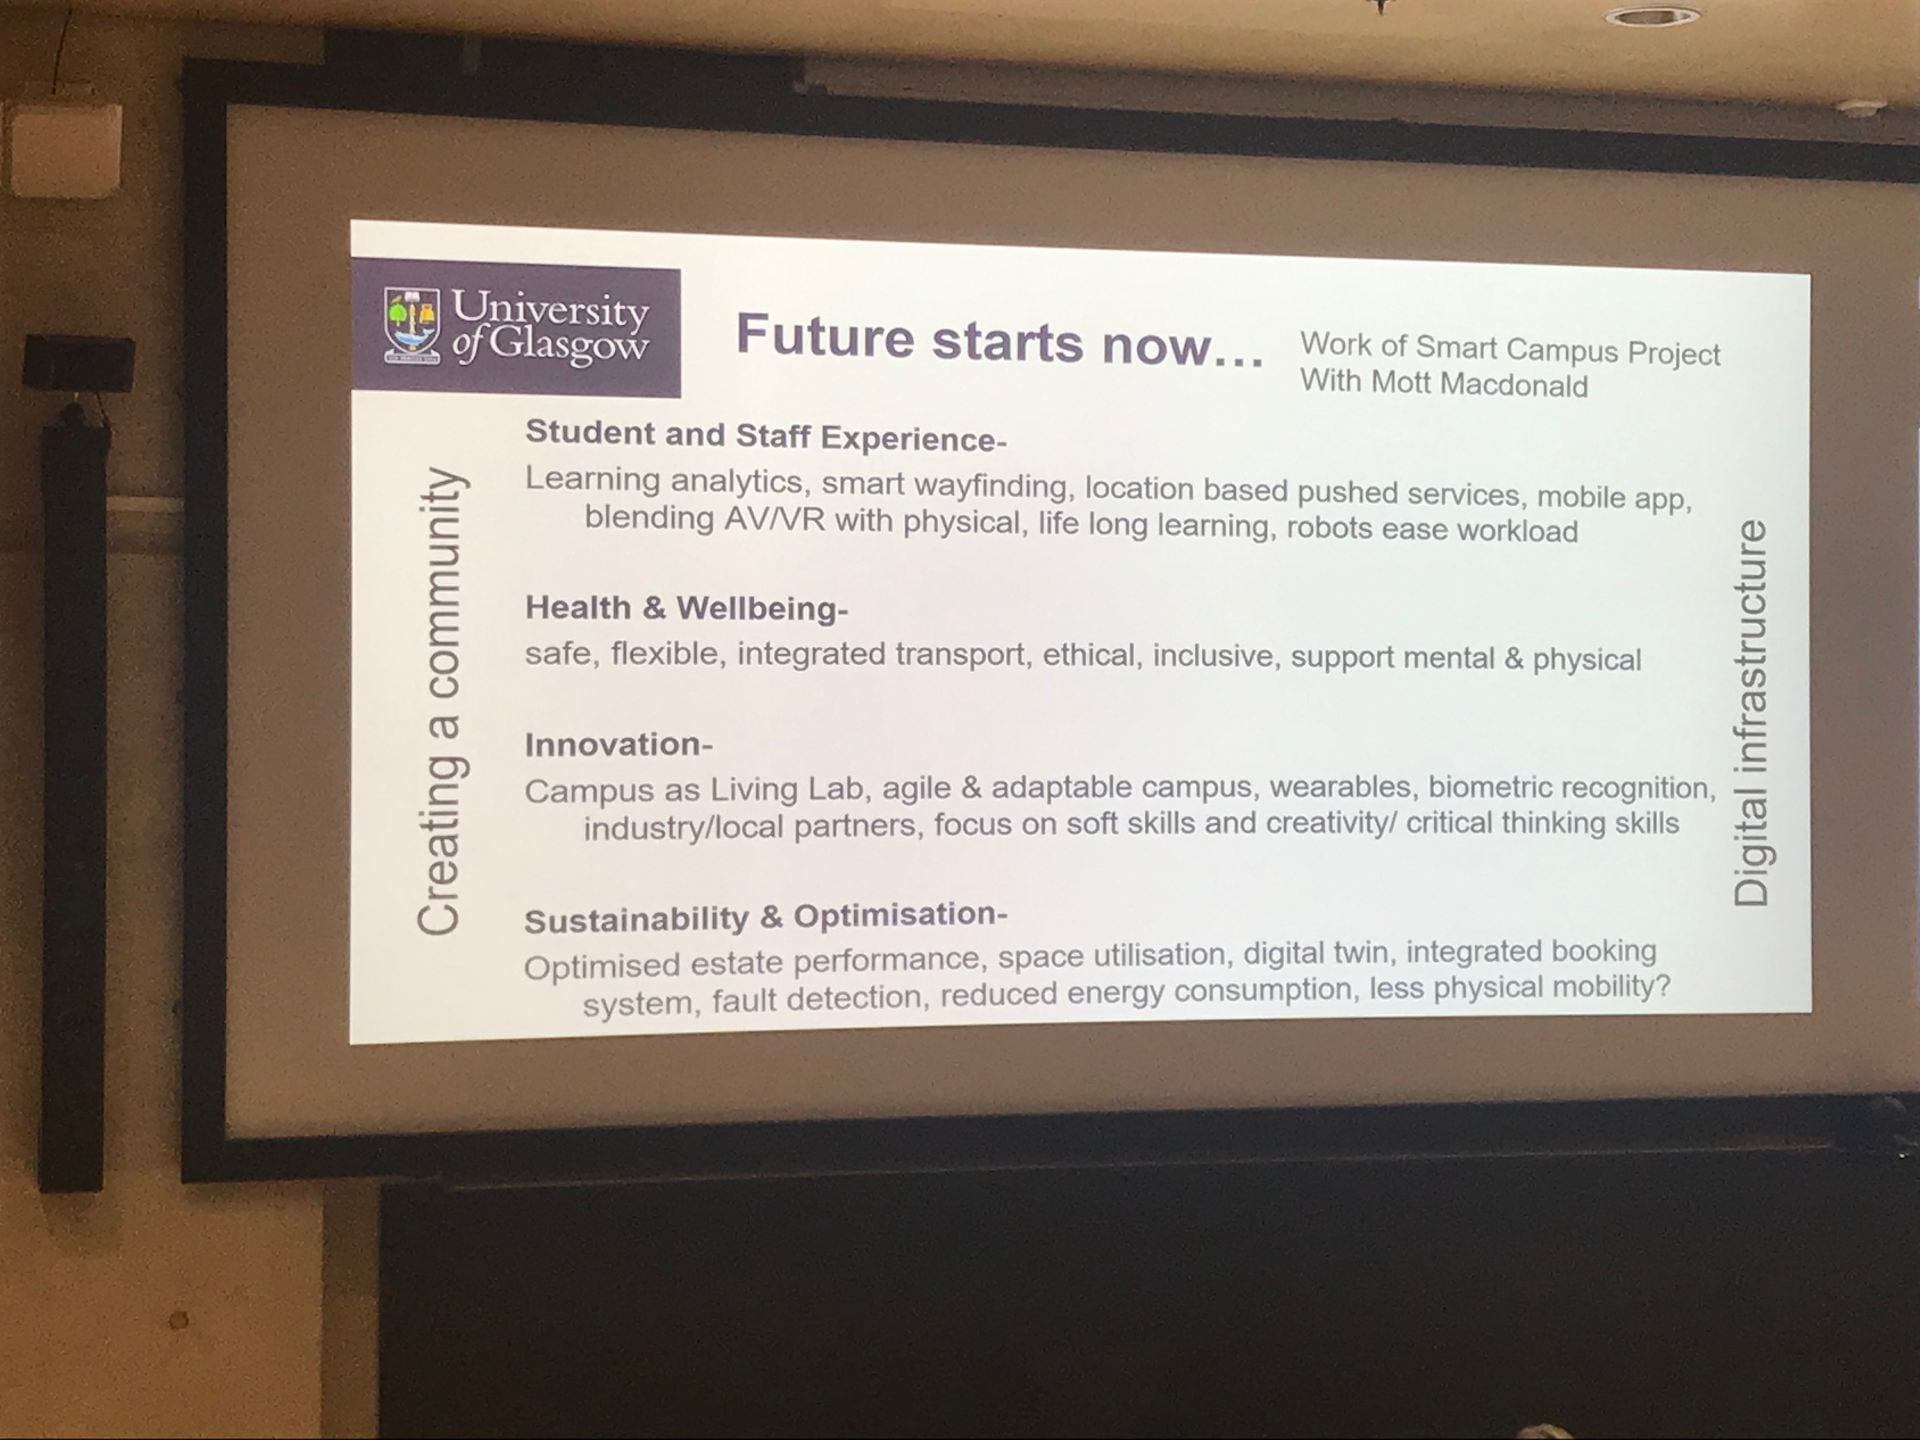 Slide focussing on what is being focussed on to achieve the campus of the future